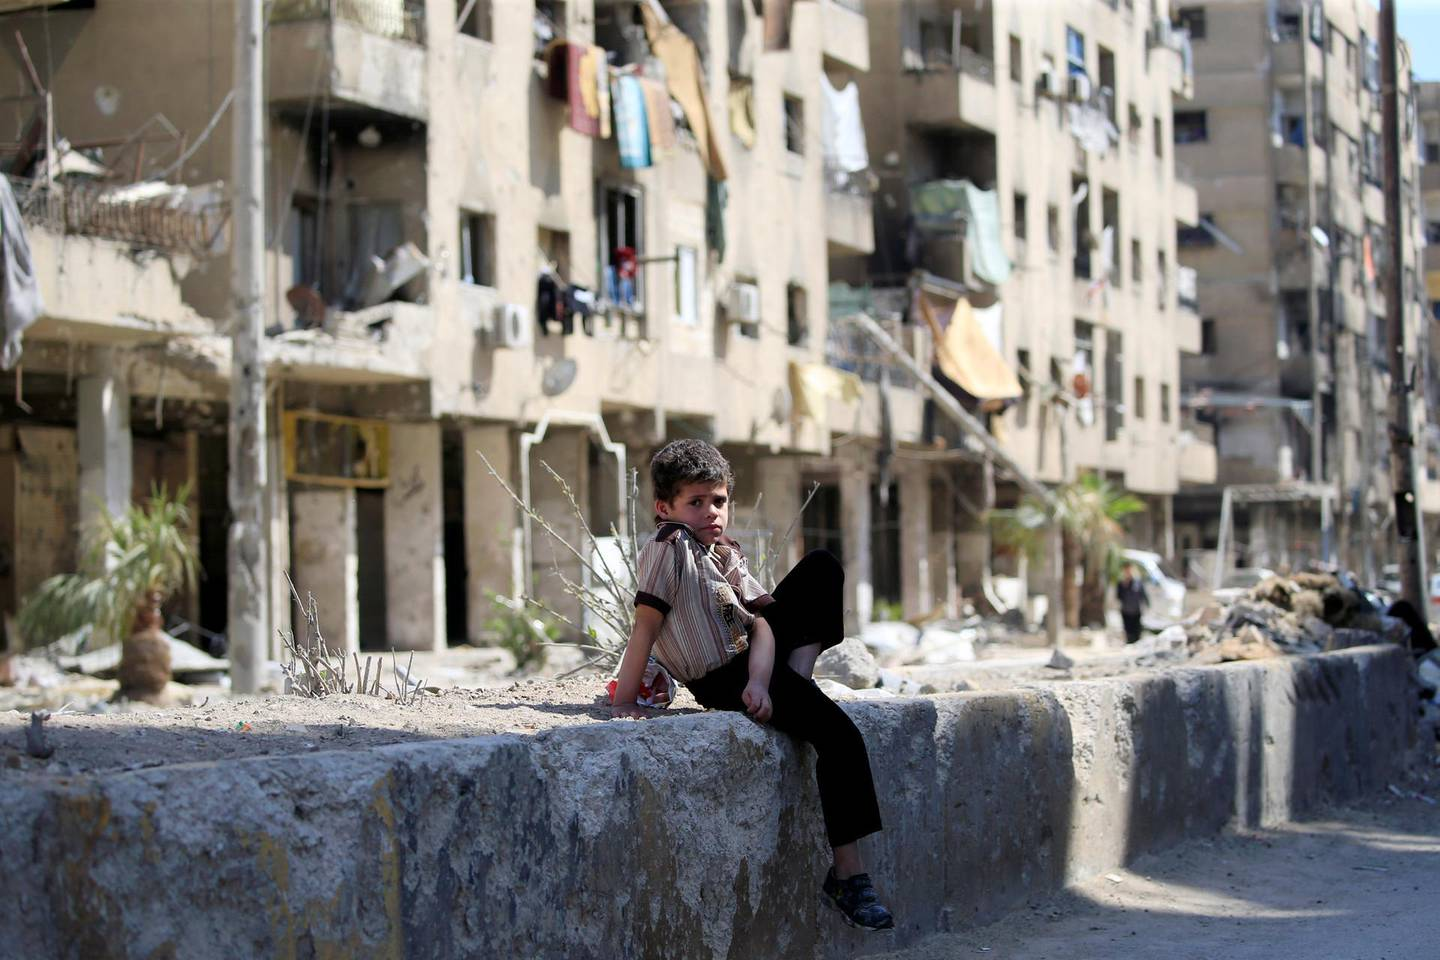 A child sits in a street during a media tour in Douma near Damascus, Syria April 23, 2018. REUTERS/ Ali Hashisho